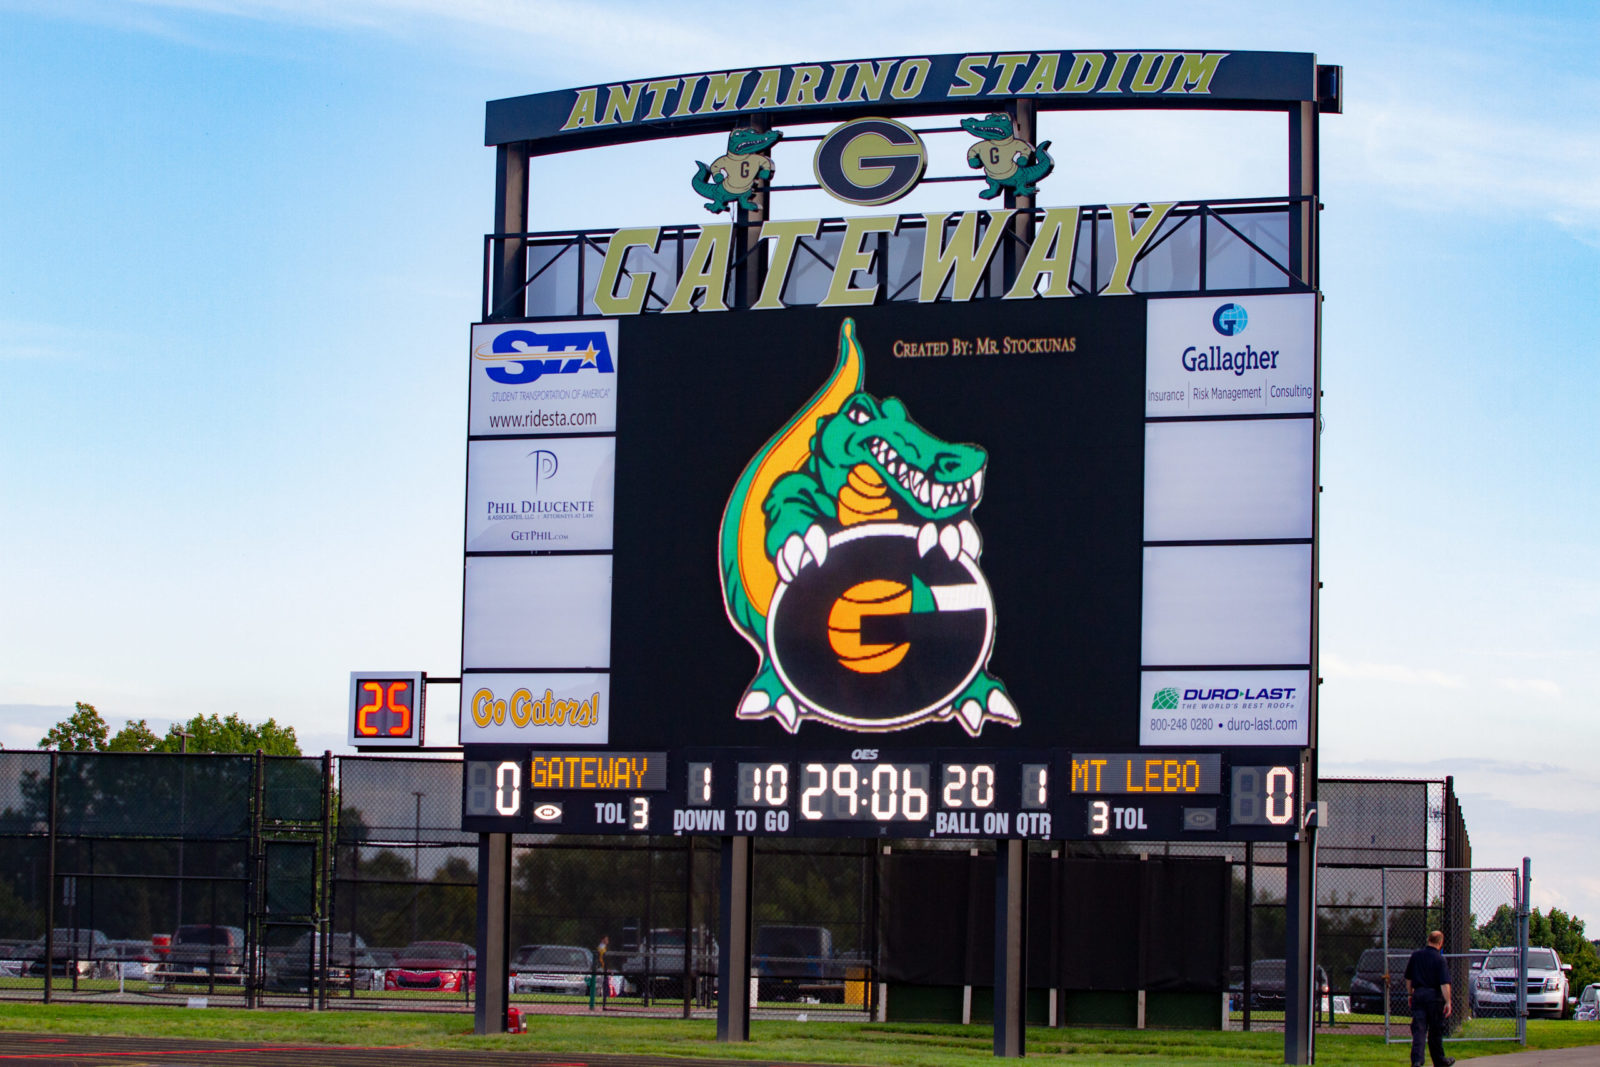 The Antimarino Stadium Gateway outdoor scoreboard.